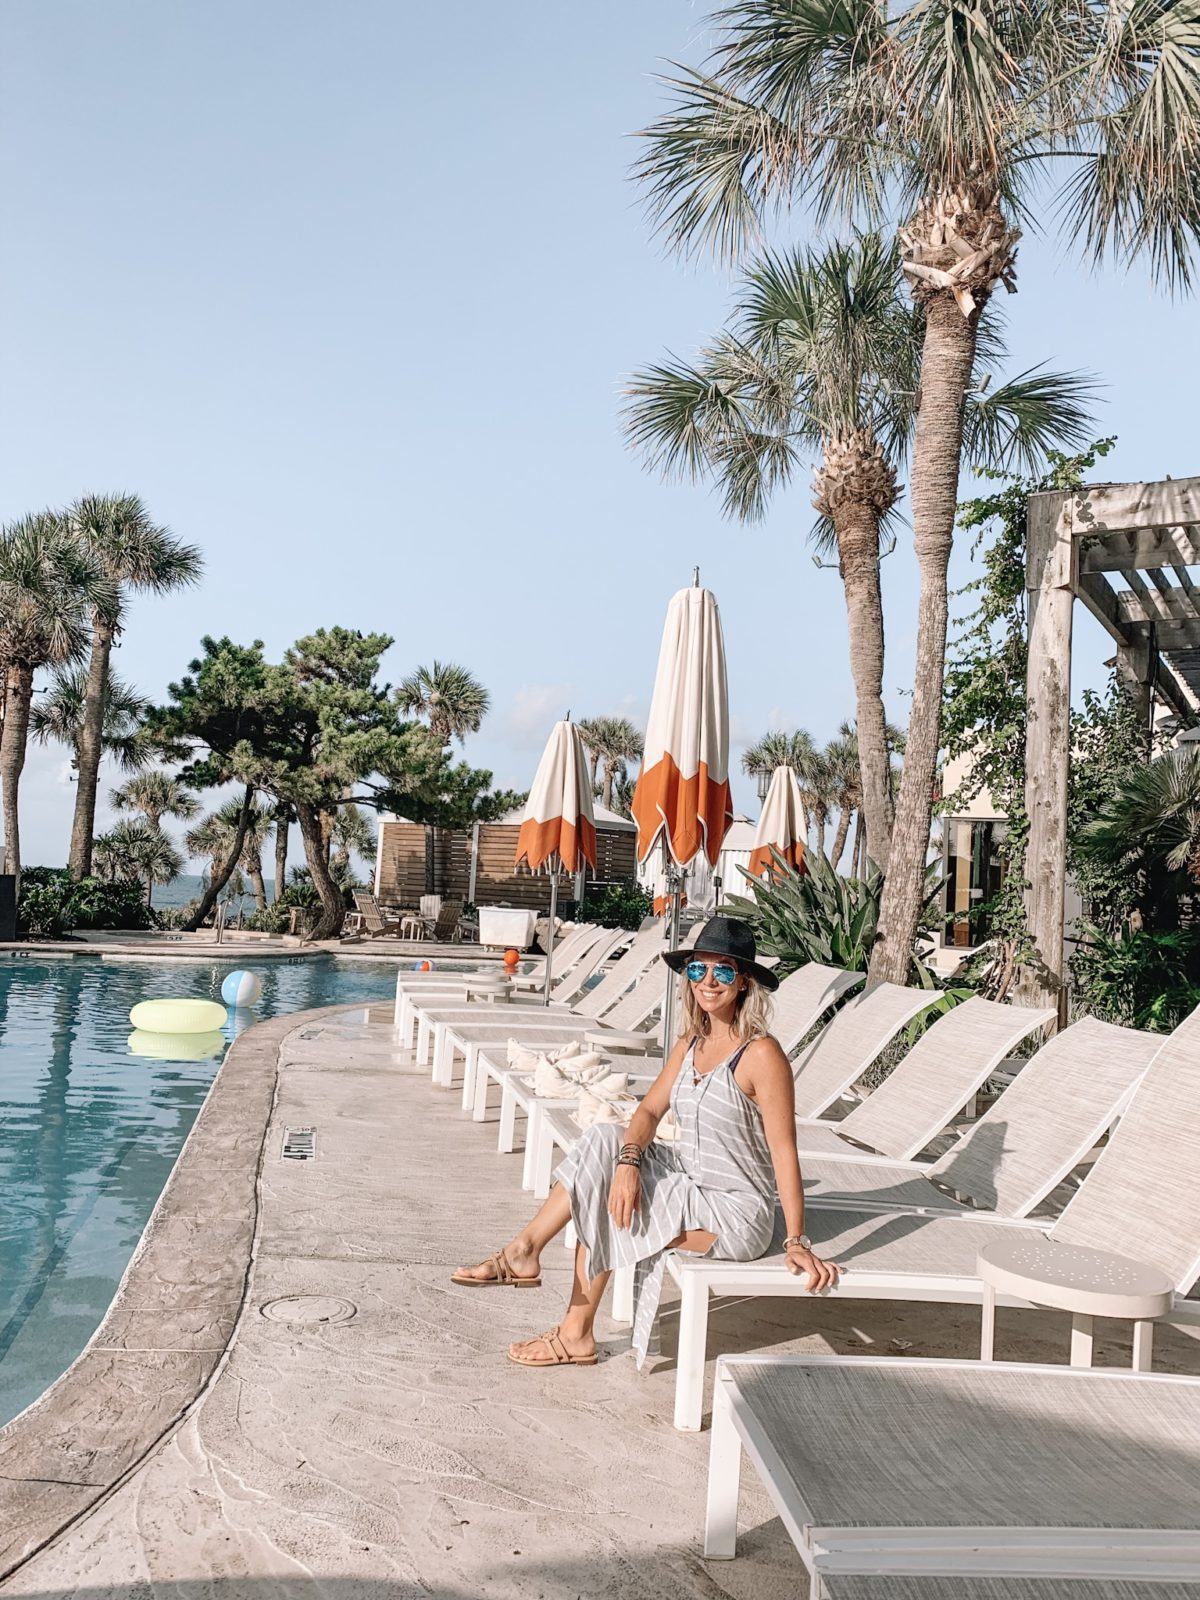 48 Hours in Galveston - grey maxi dress by the pool